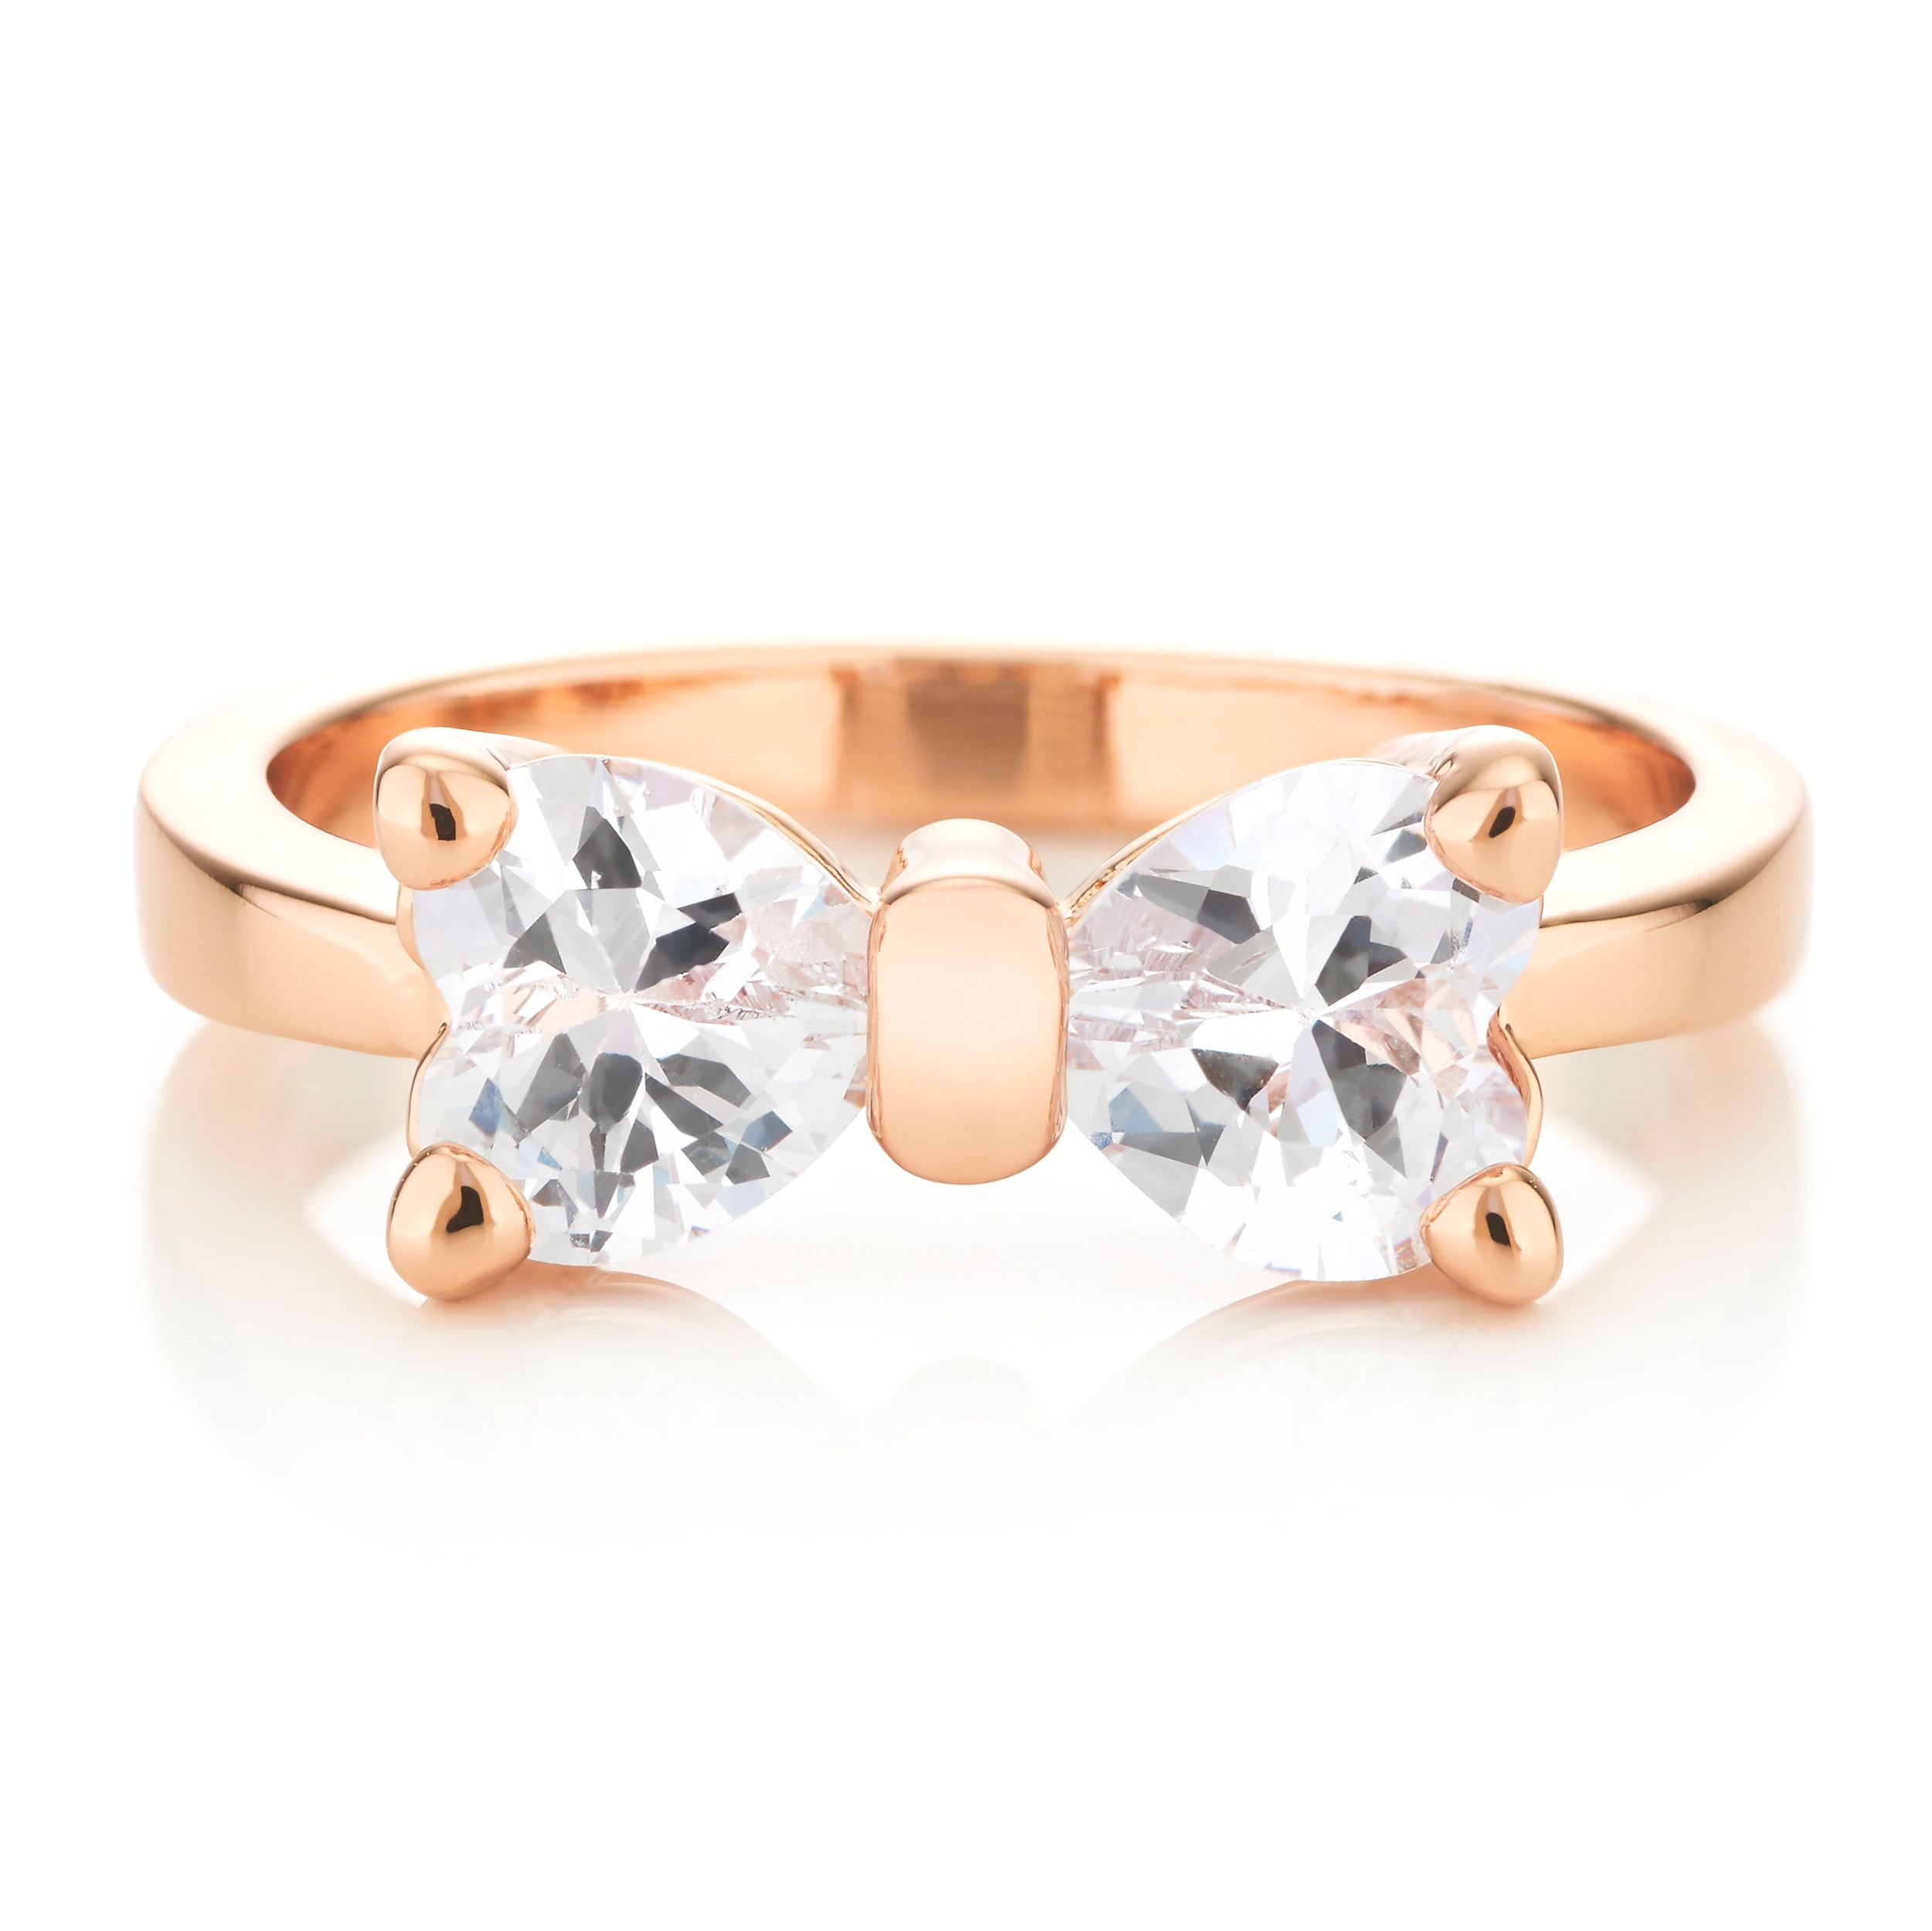 Buckley London Rose Gold Bow Ring